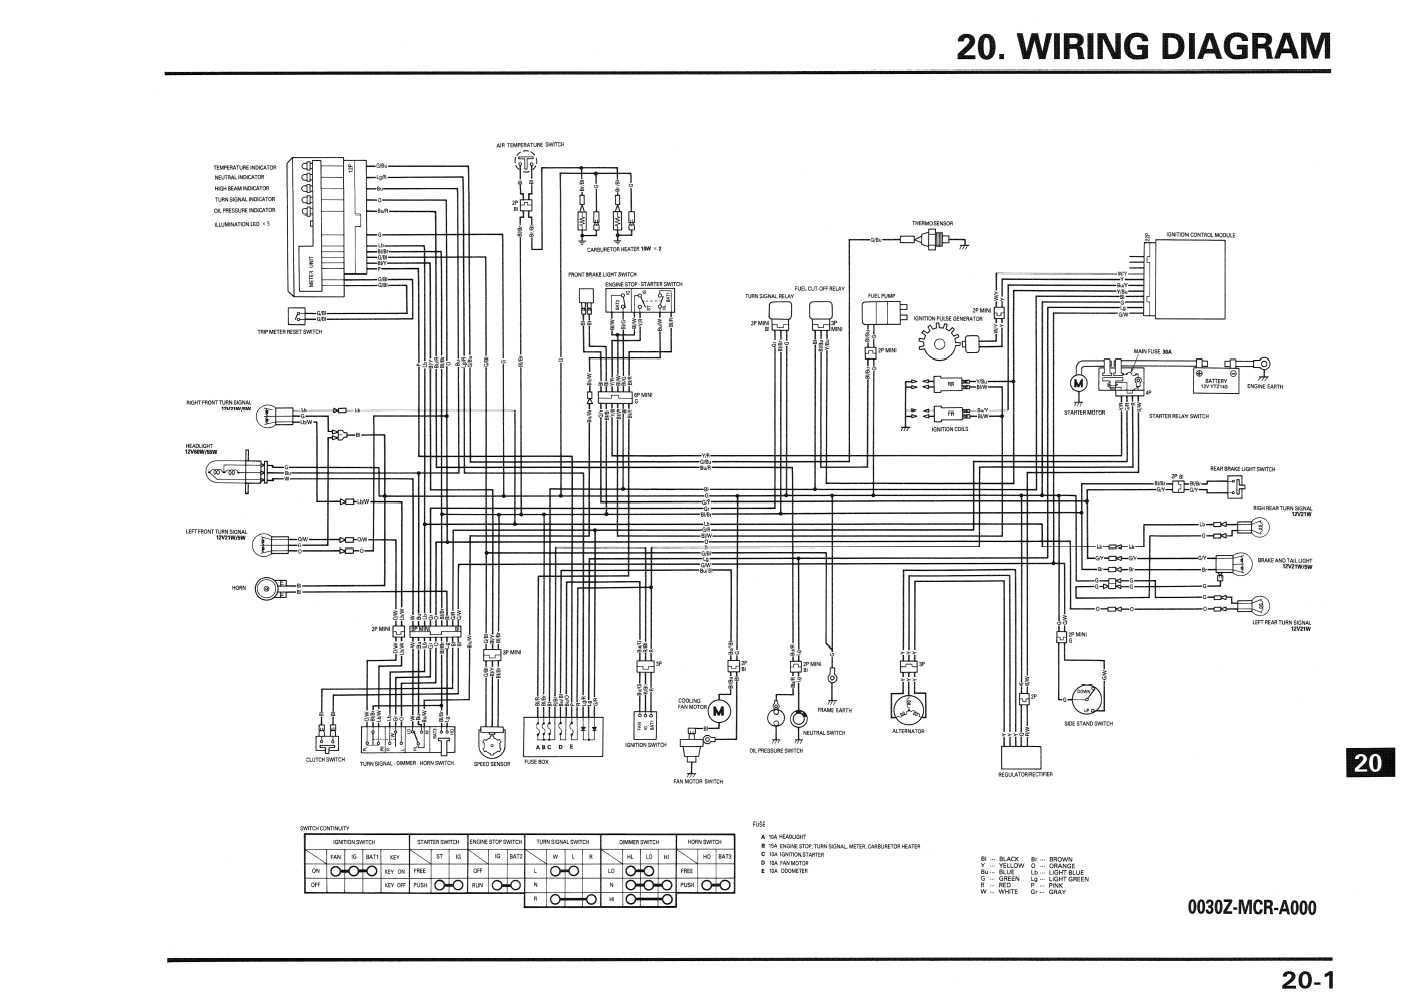 Vt750dc Wiring Diagram Automotive Honda Xr600 1983 Shadow 750 36 Vt750 83